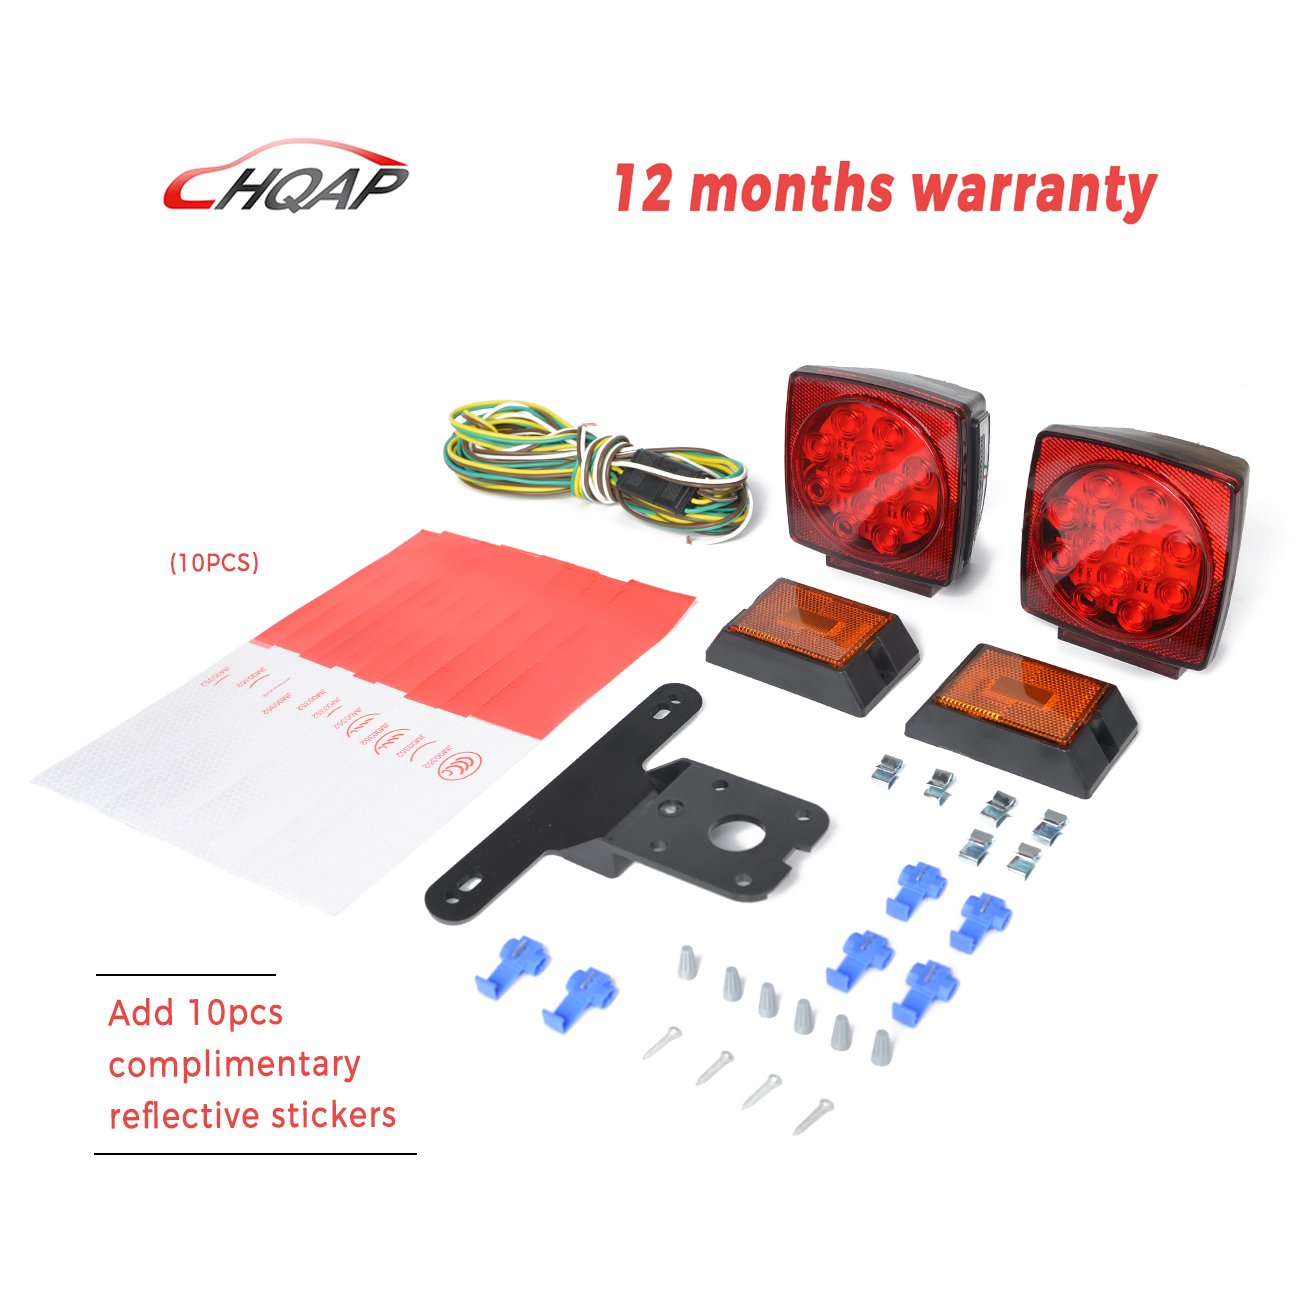 Cheap Led Tail Lights Trailer Find Deals On Light Wiring Harness Get Quotations Hqap 2018 New 12v Submersible Kit Combined Stop Taillights